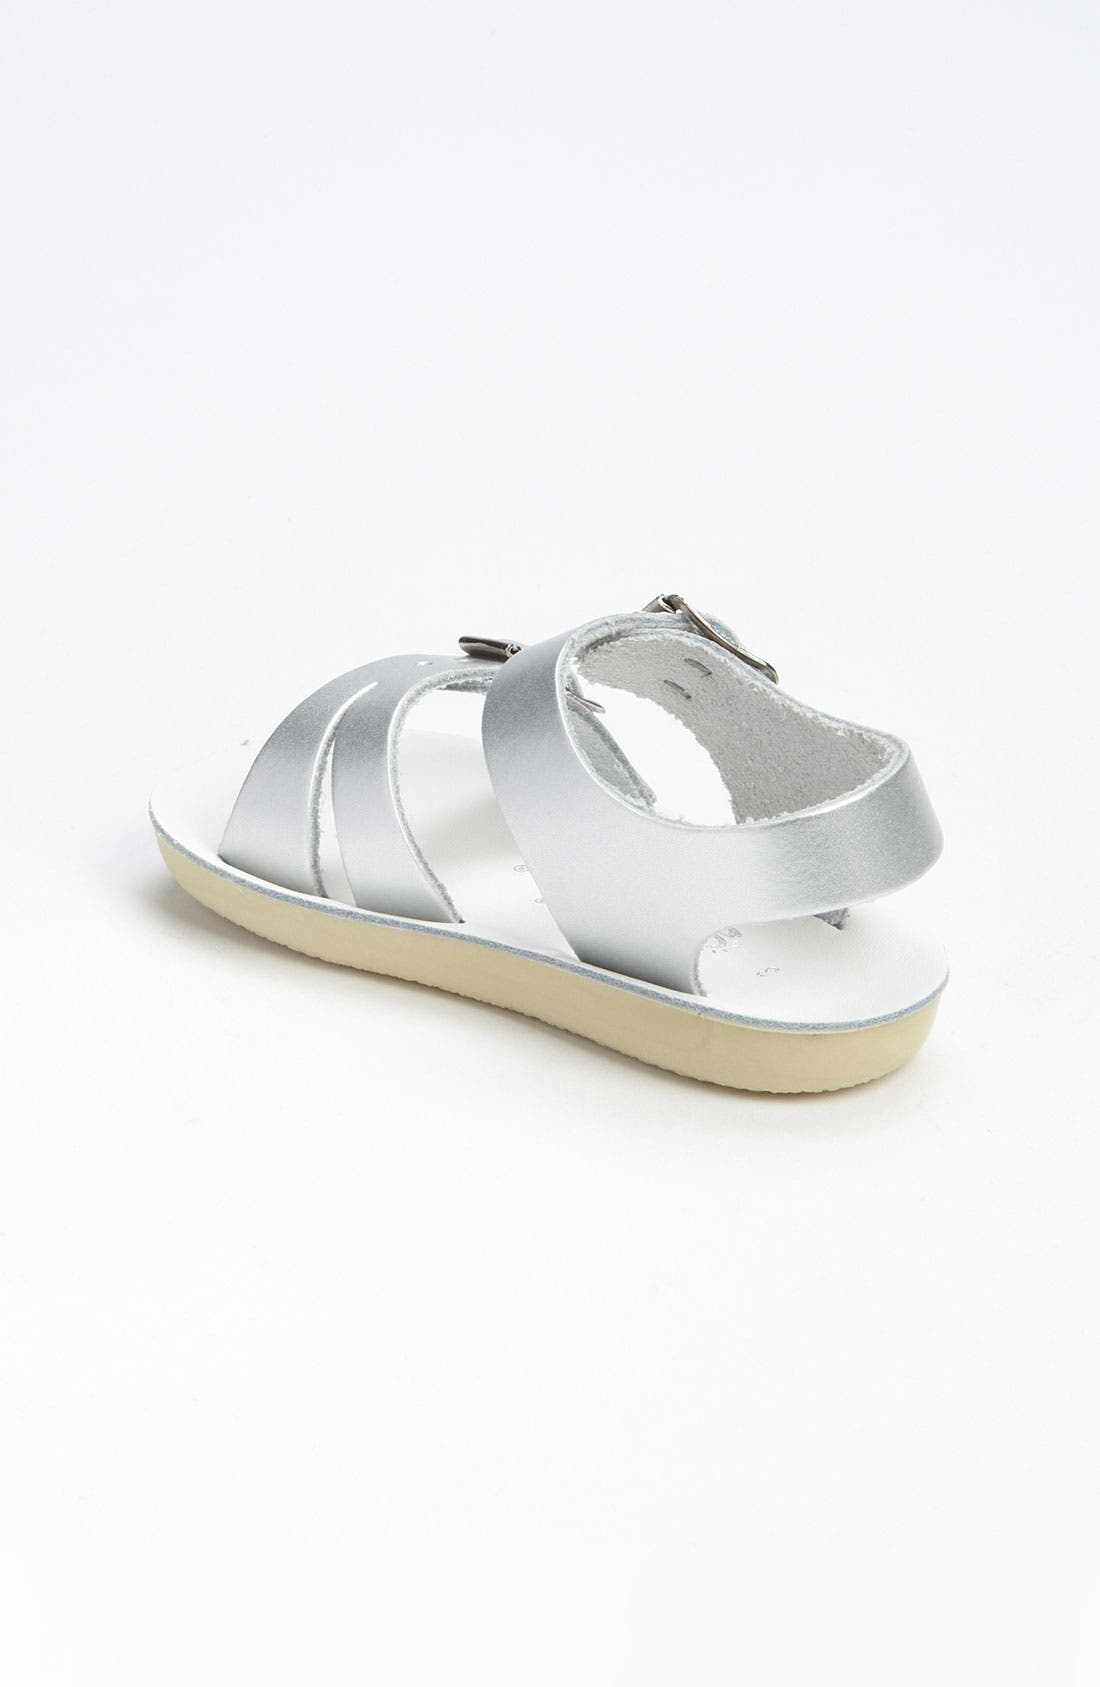 SALT WATER SANDALS BY HOY, Sea Wee Water Friendly Sandal, Alternate thumbnail 3, color, SILVER